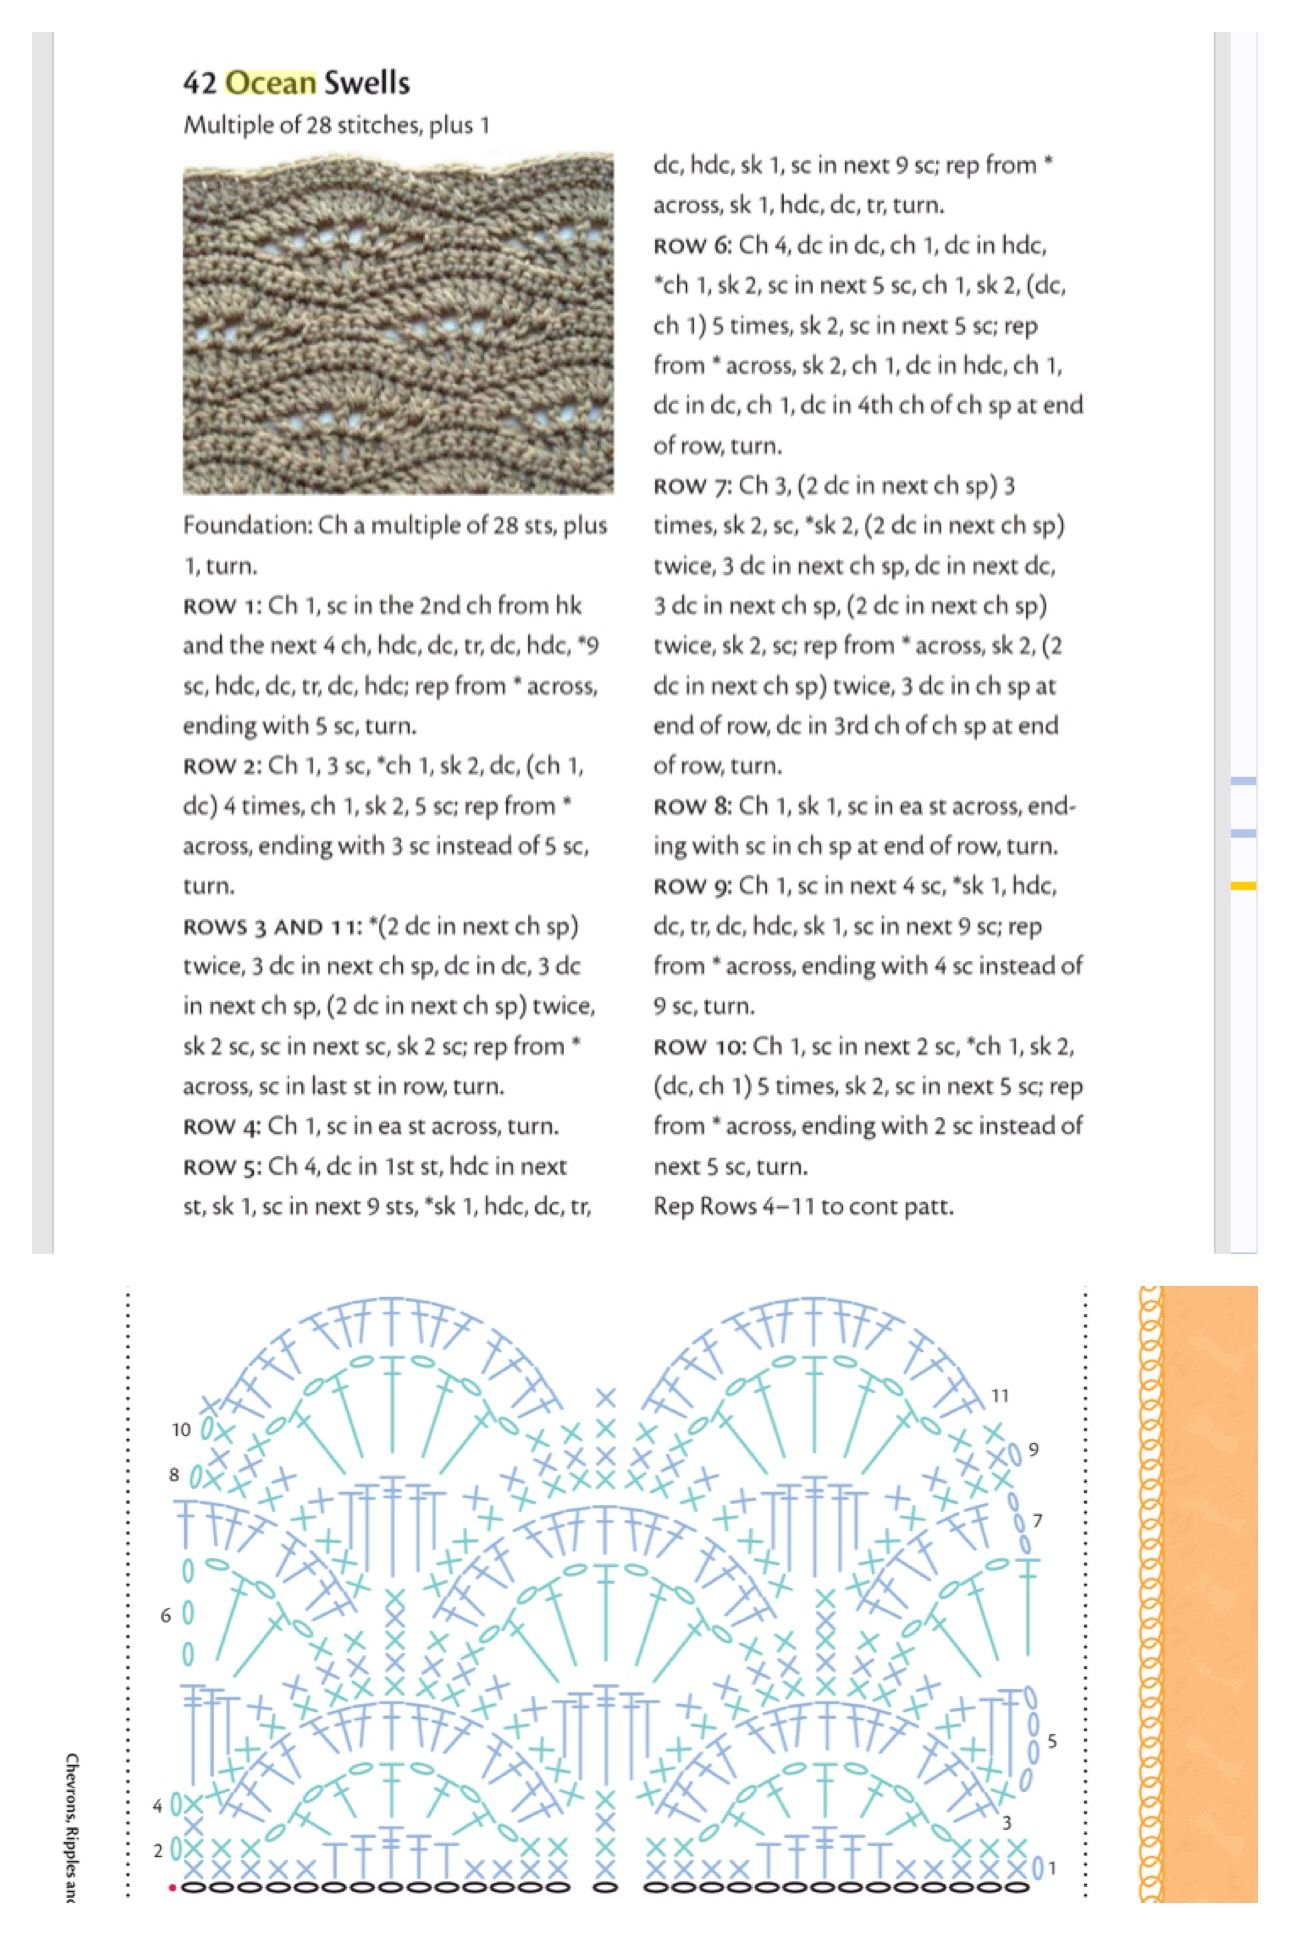 The ocean swells wave crochet stitch pattern and chart diagram the ocean swells wave crochet stitch pattern and chart diagram free found via google books ccuart Gallery